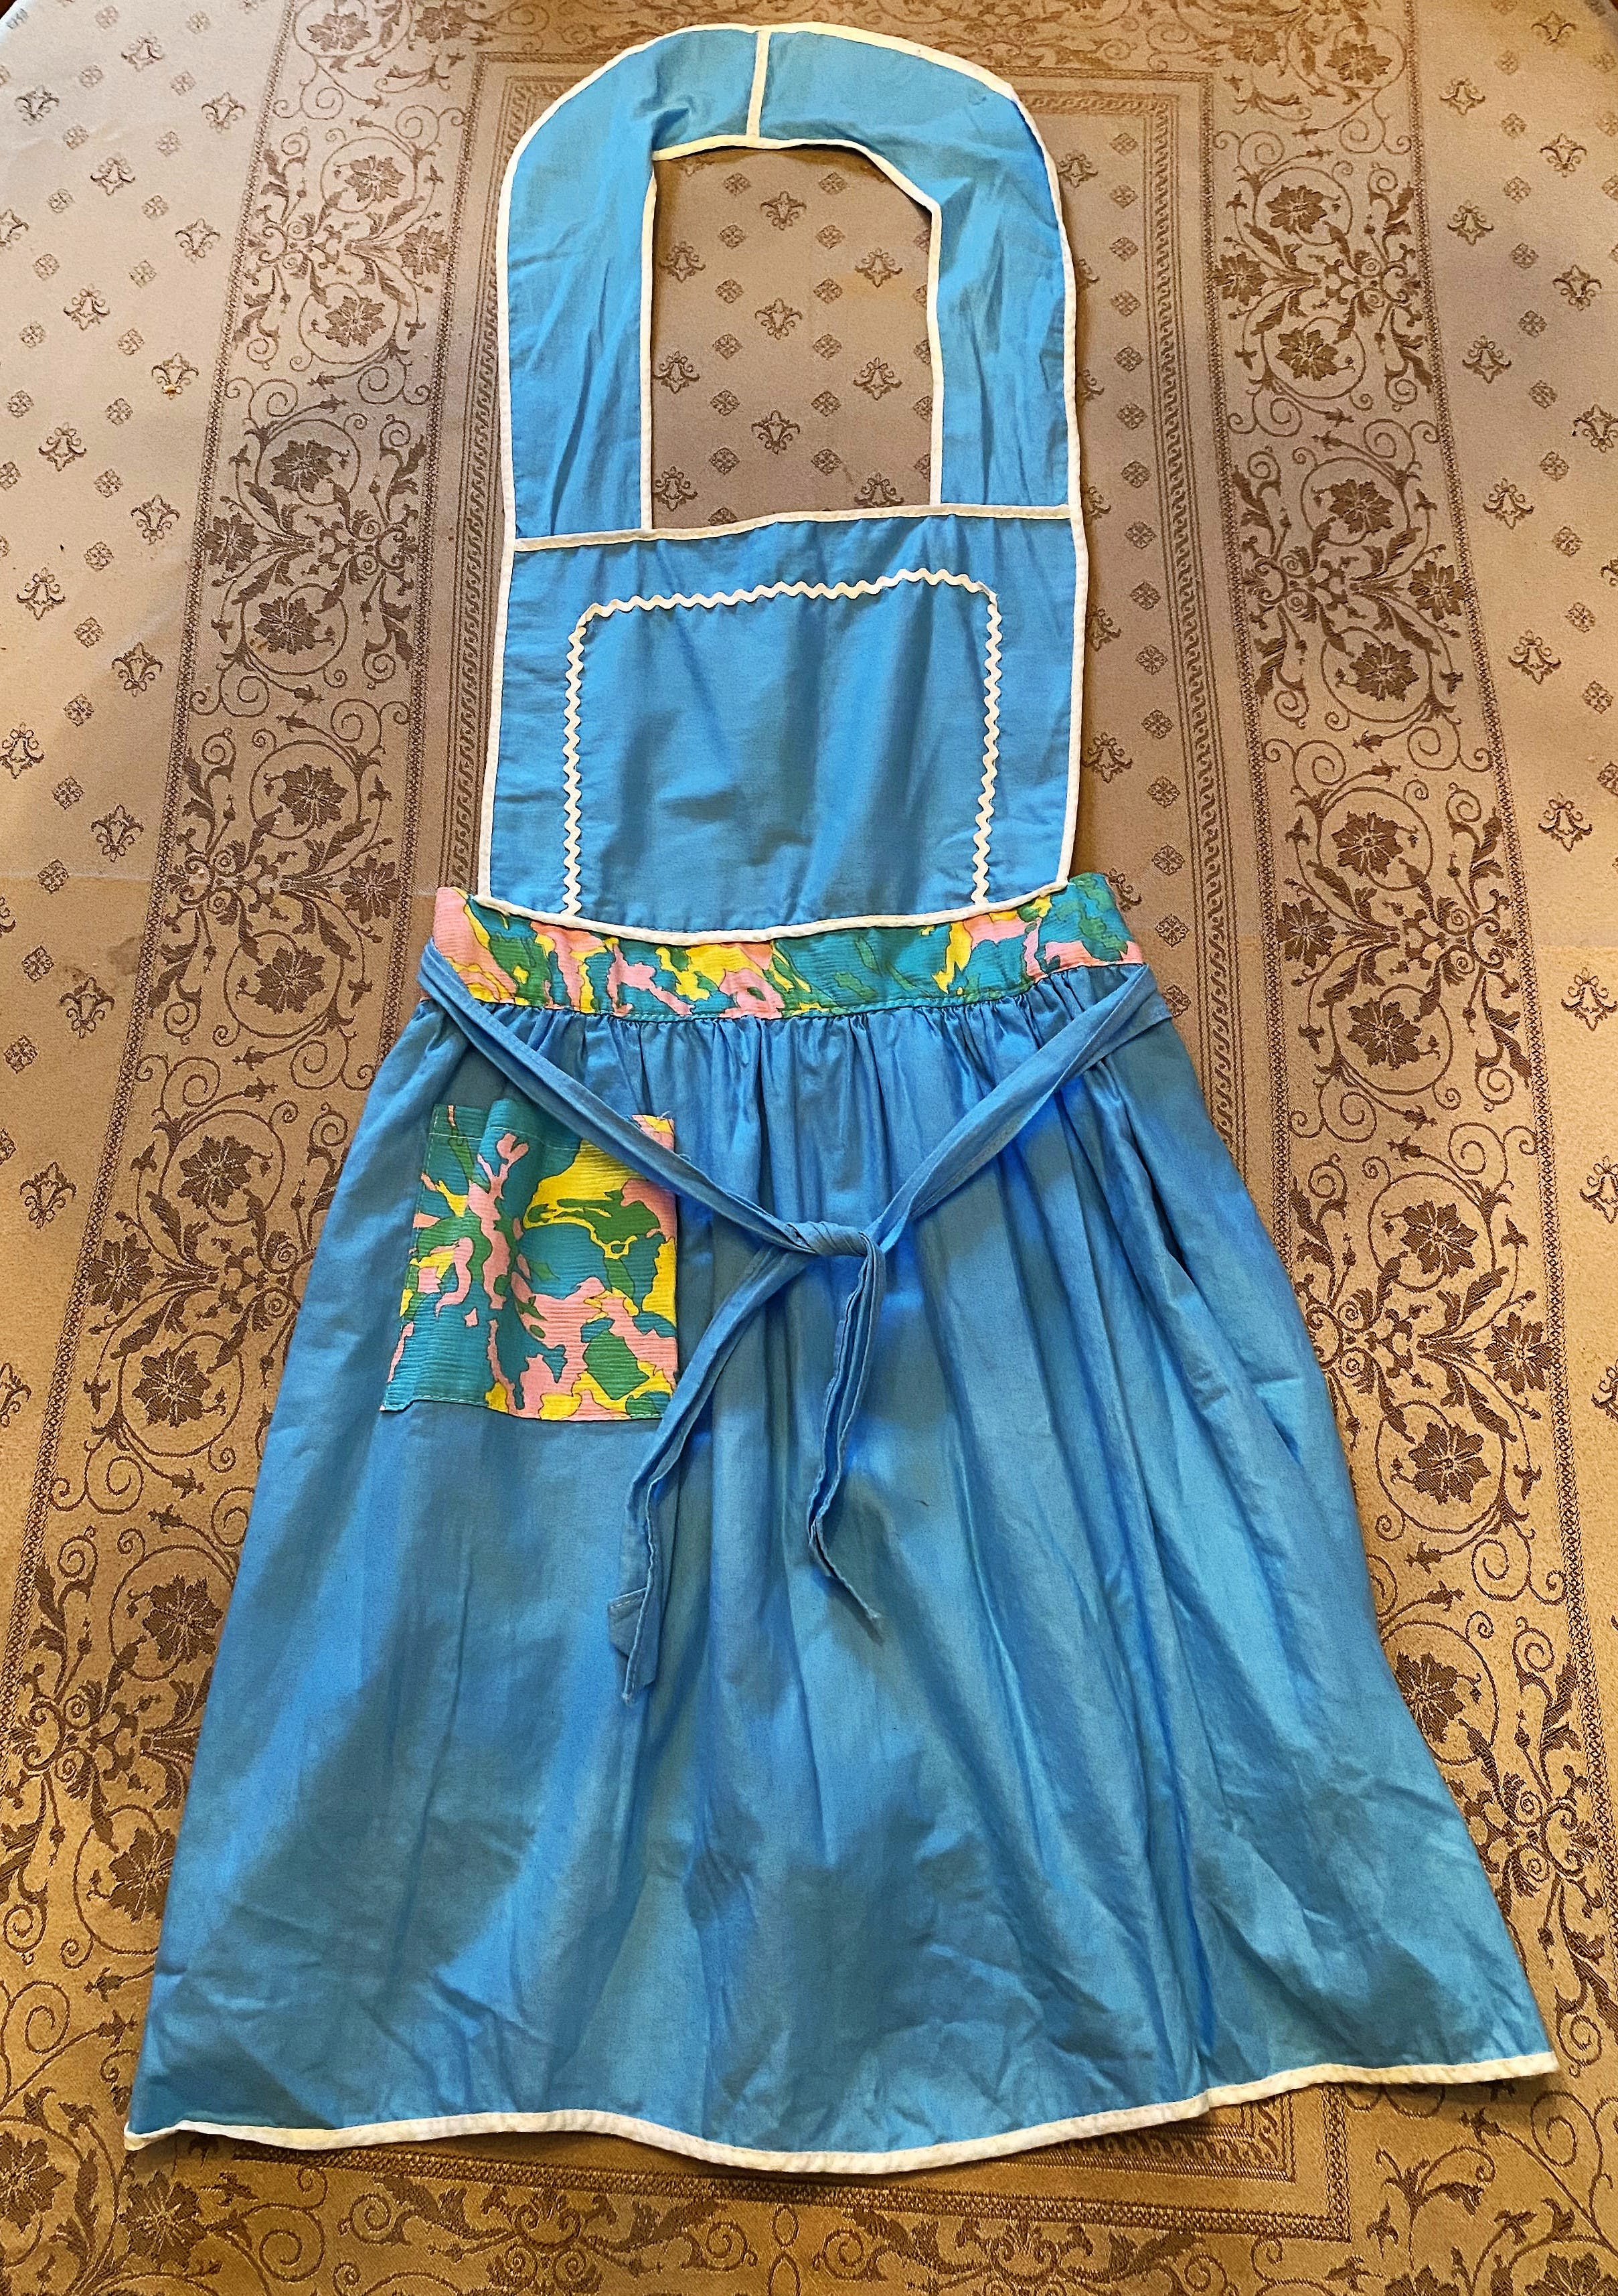 Over the years, I have collected many fancy aprons, but none quite as special as this one.  Mom tells me that I was only five years old when I helped her make it.  I stand a little taller when I wear my pretty apron. Happy Mother's Day, mom!